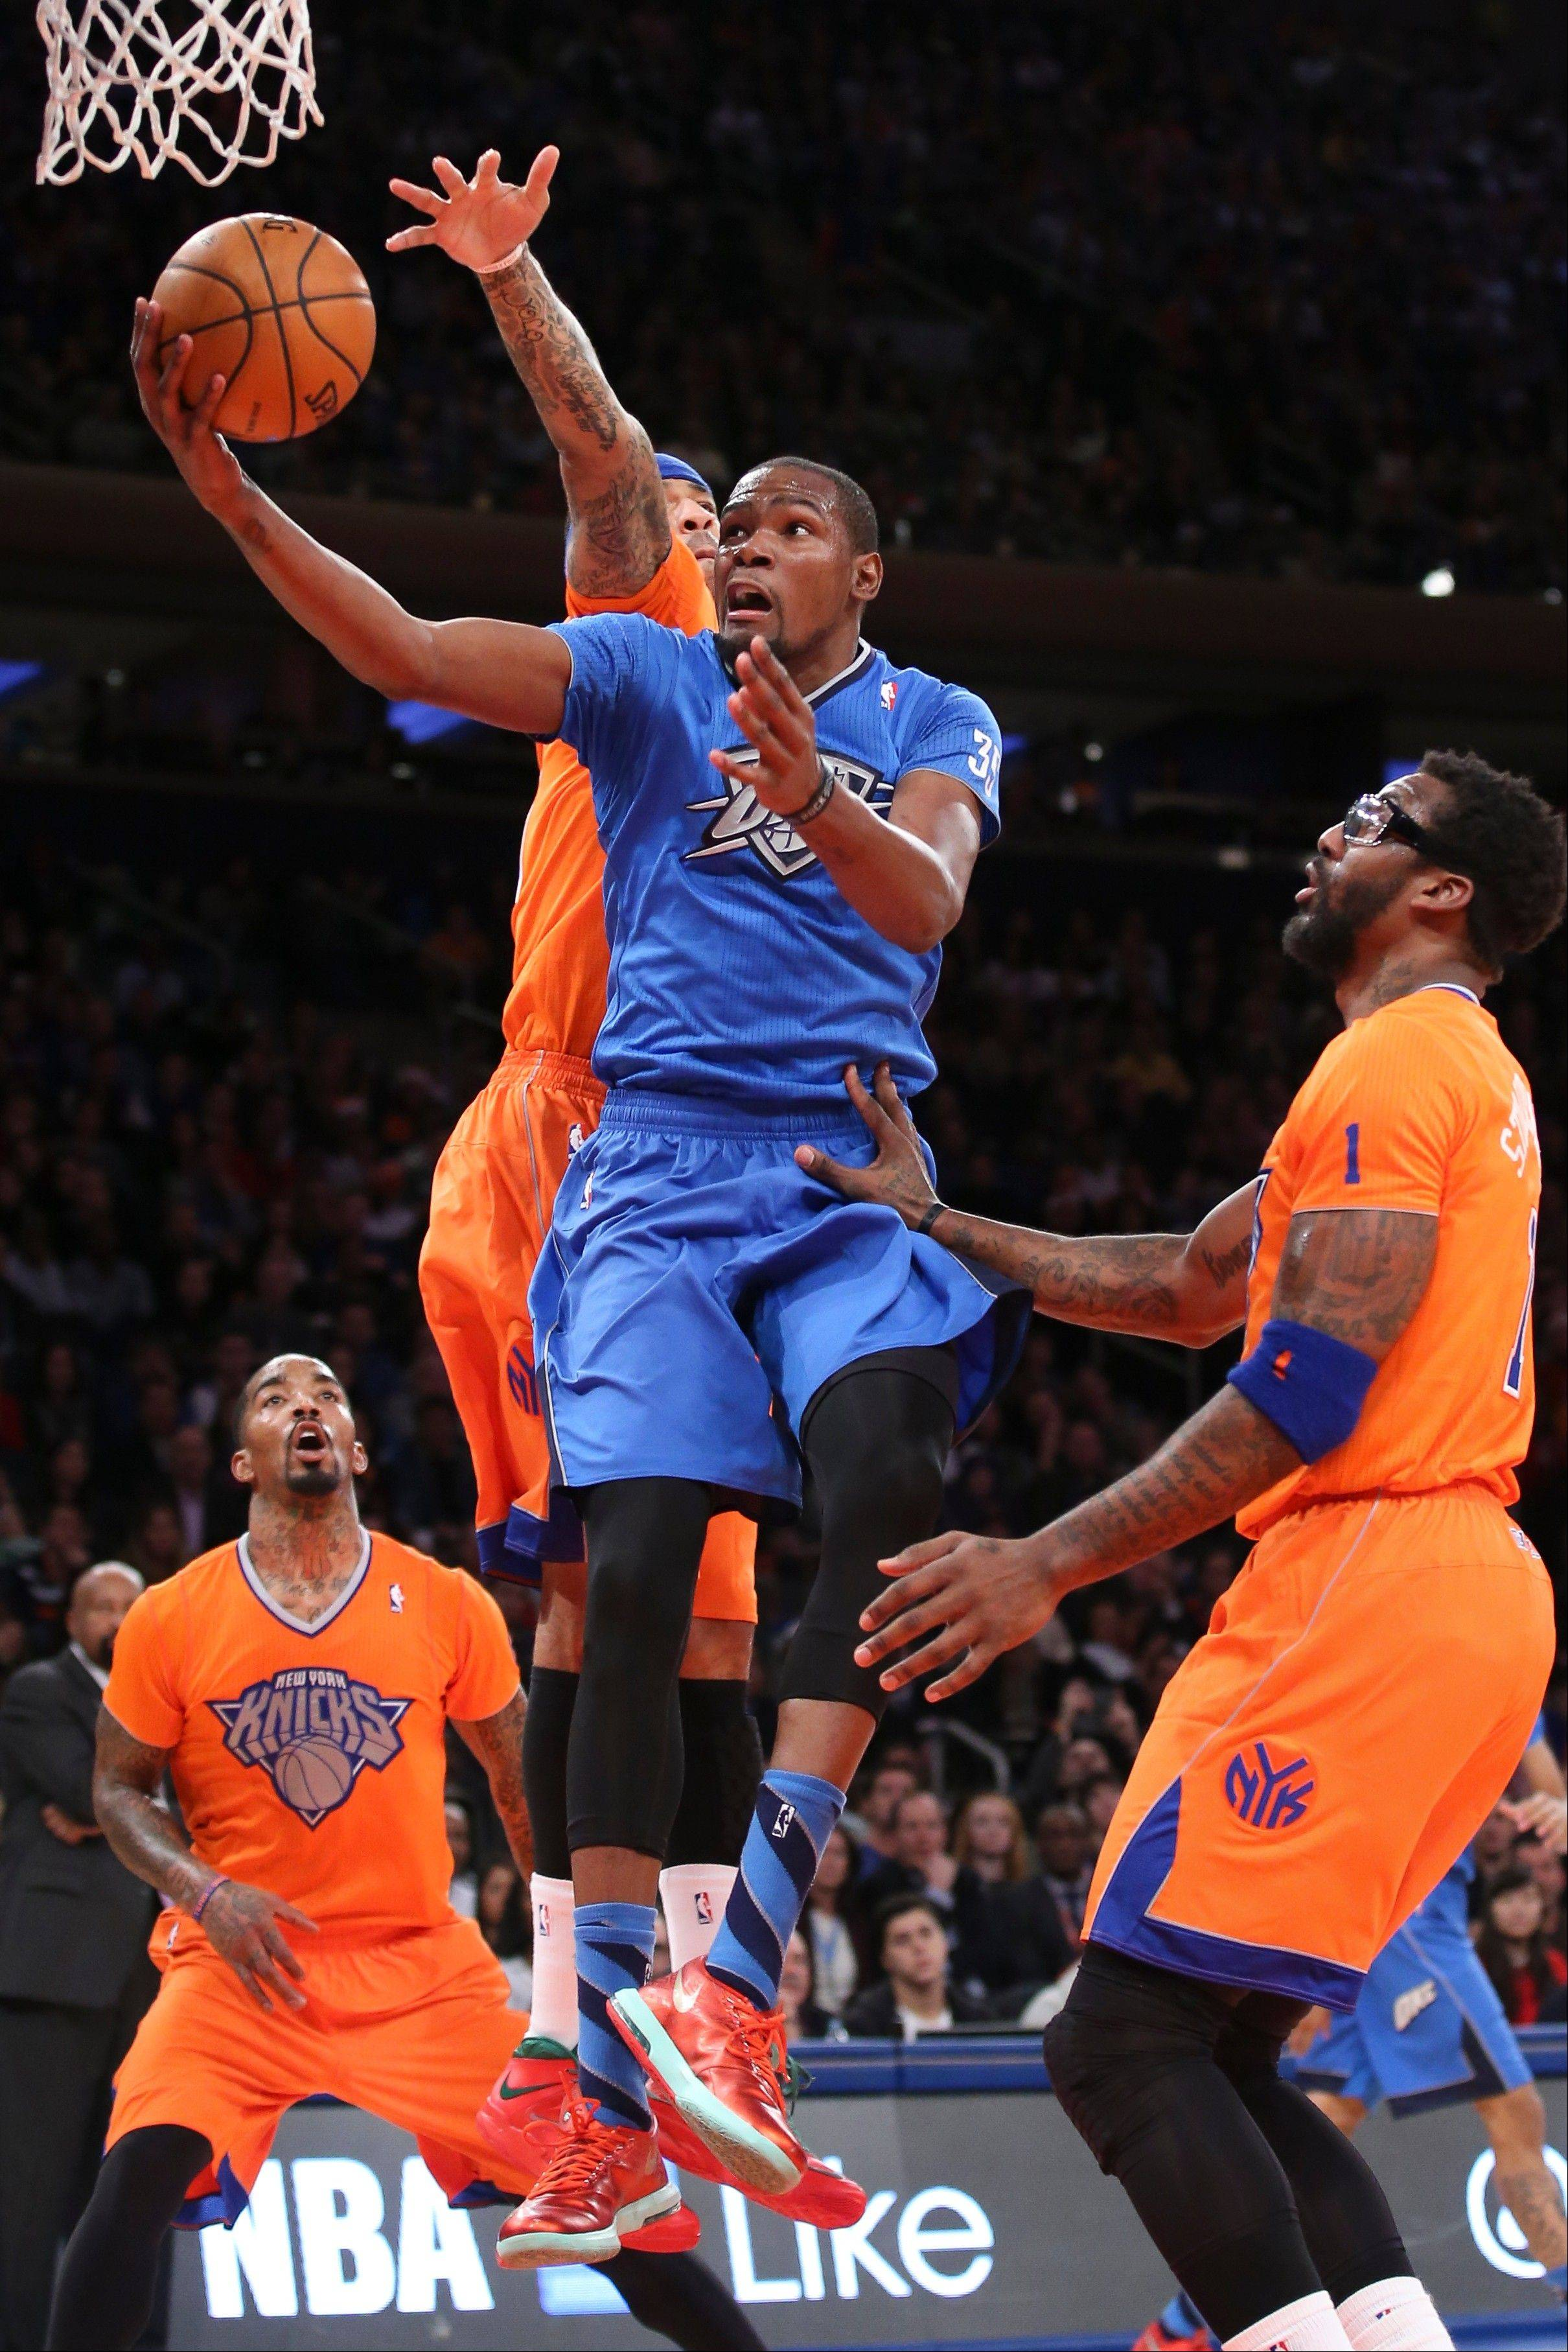 Oklahoma City Thunder forward Kevin Durant shoots against New York Knicks forward Kenyon Martin, center, as guard J.R. Smith, left, and forward Amare Stoudemire watch during the second half of Wednesday�s game at Madison Square Garden.